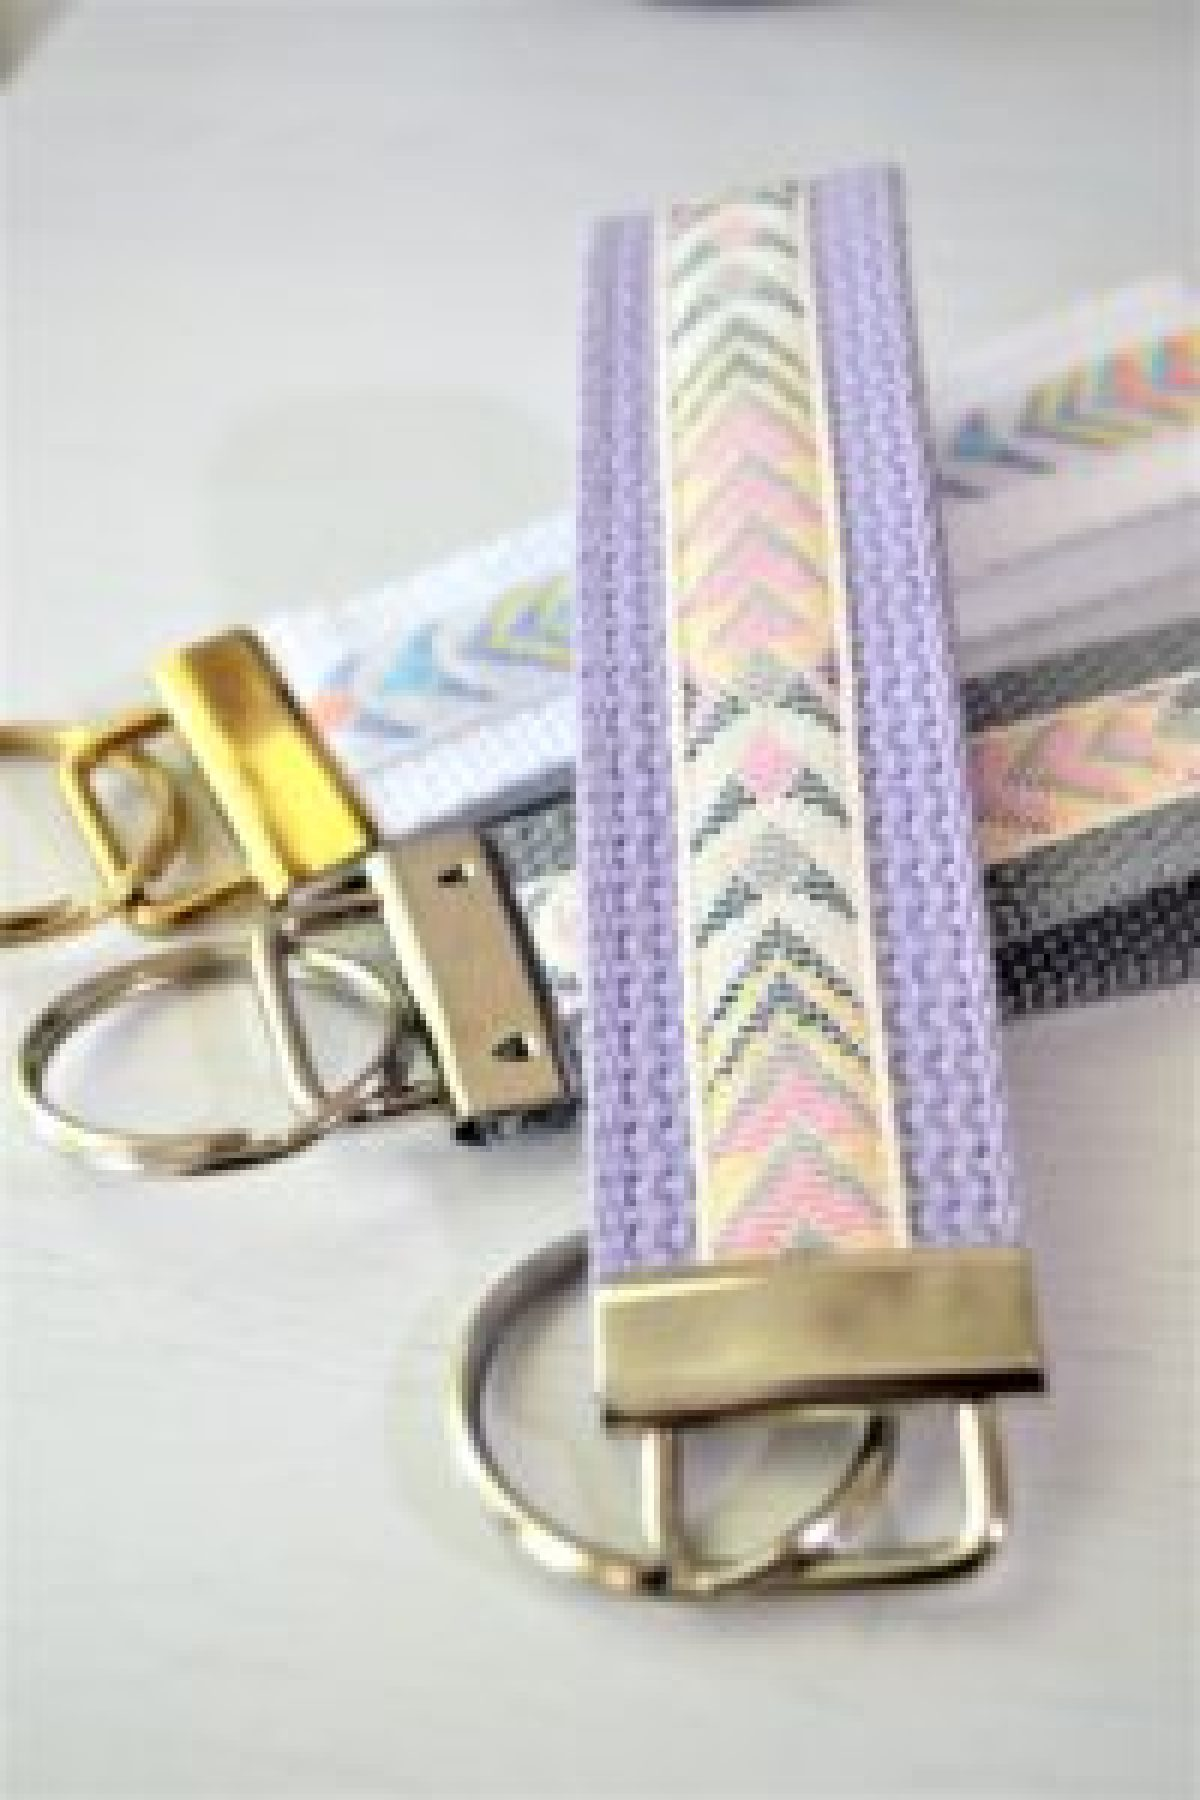 DIY Wrist Key Chains - Tutorial!